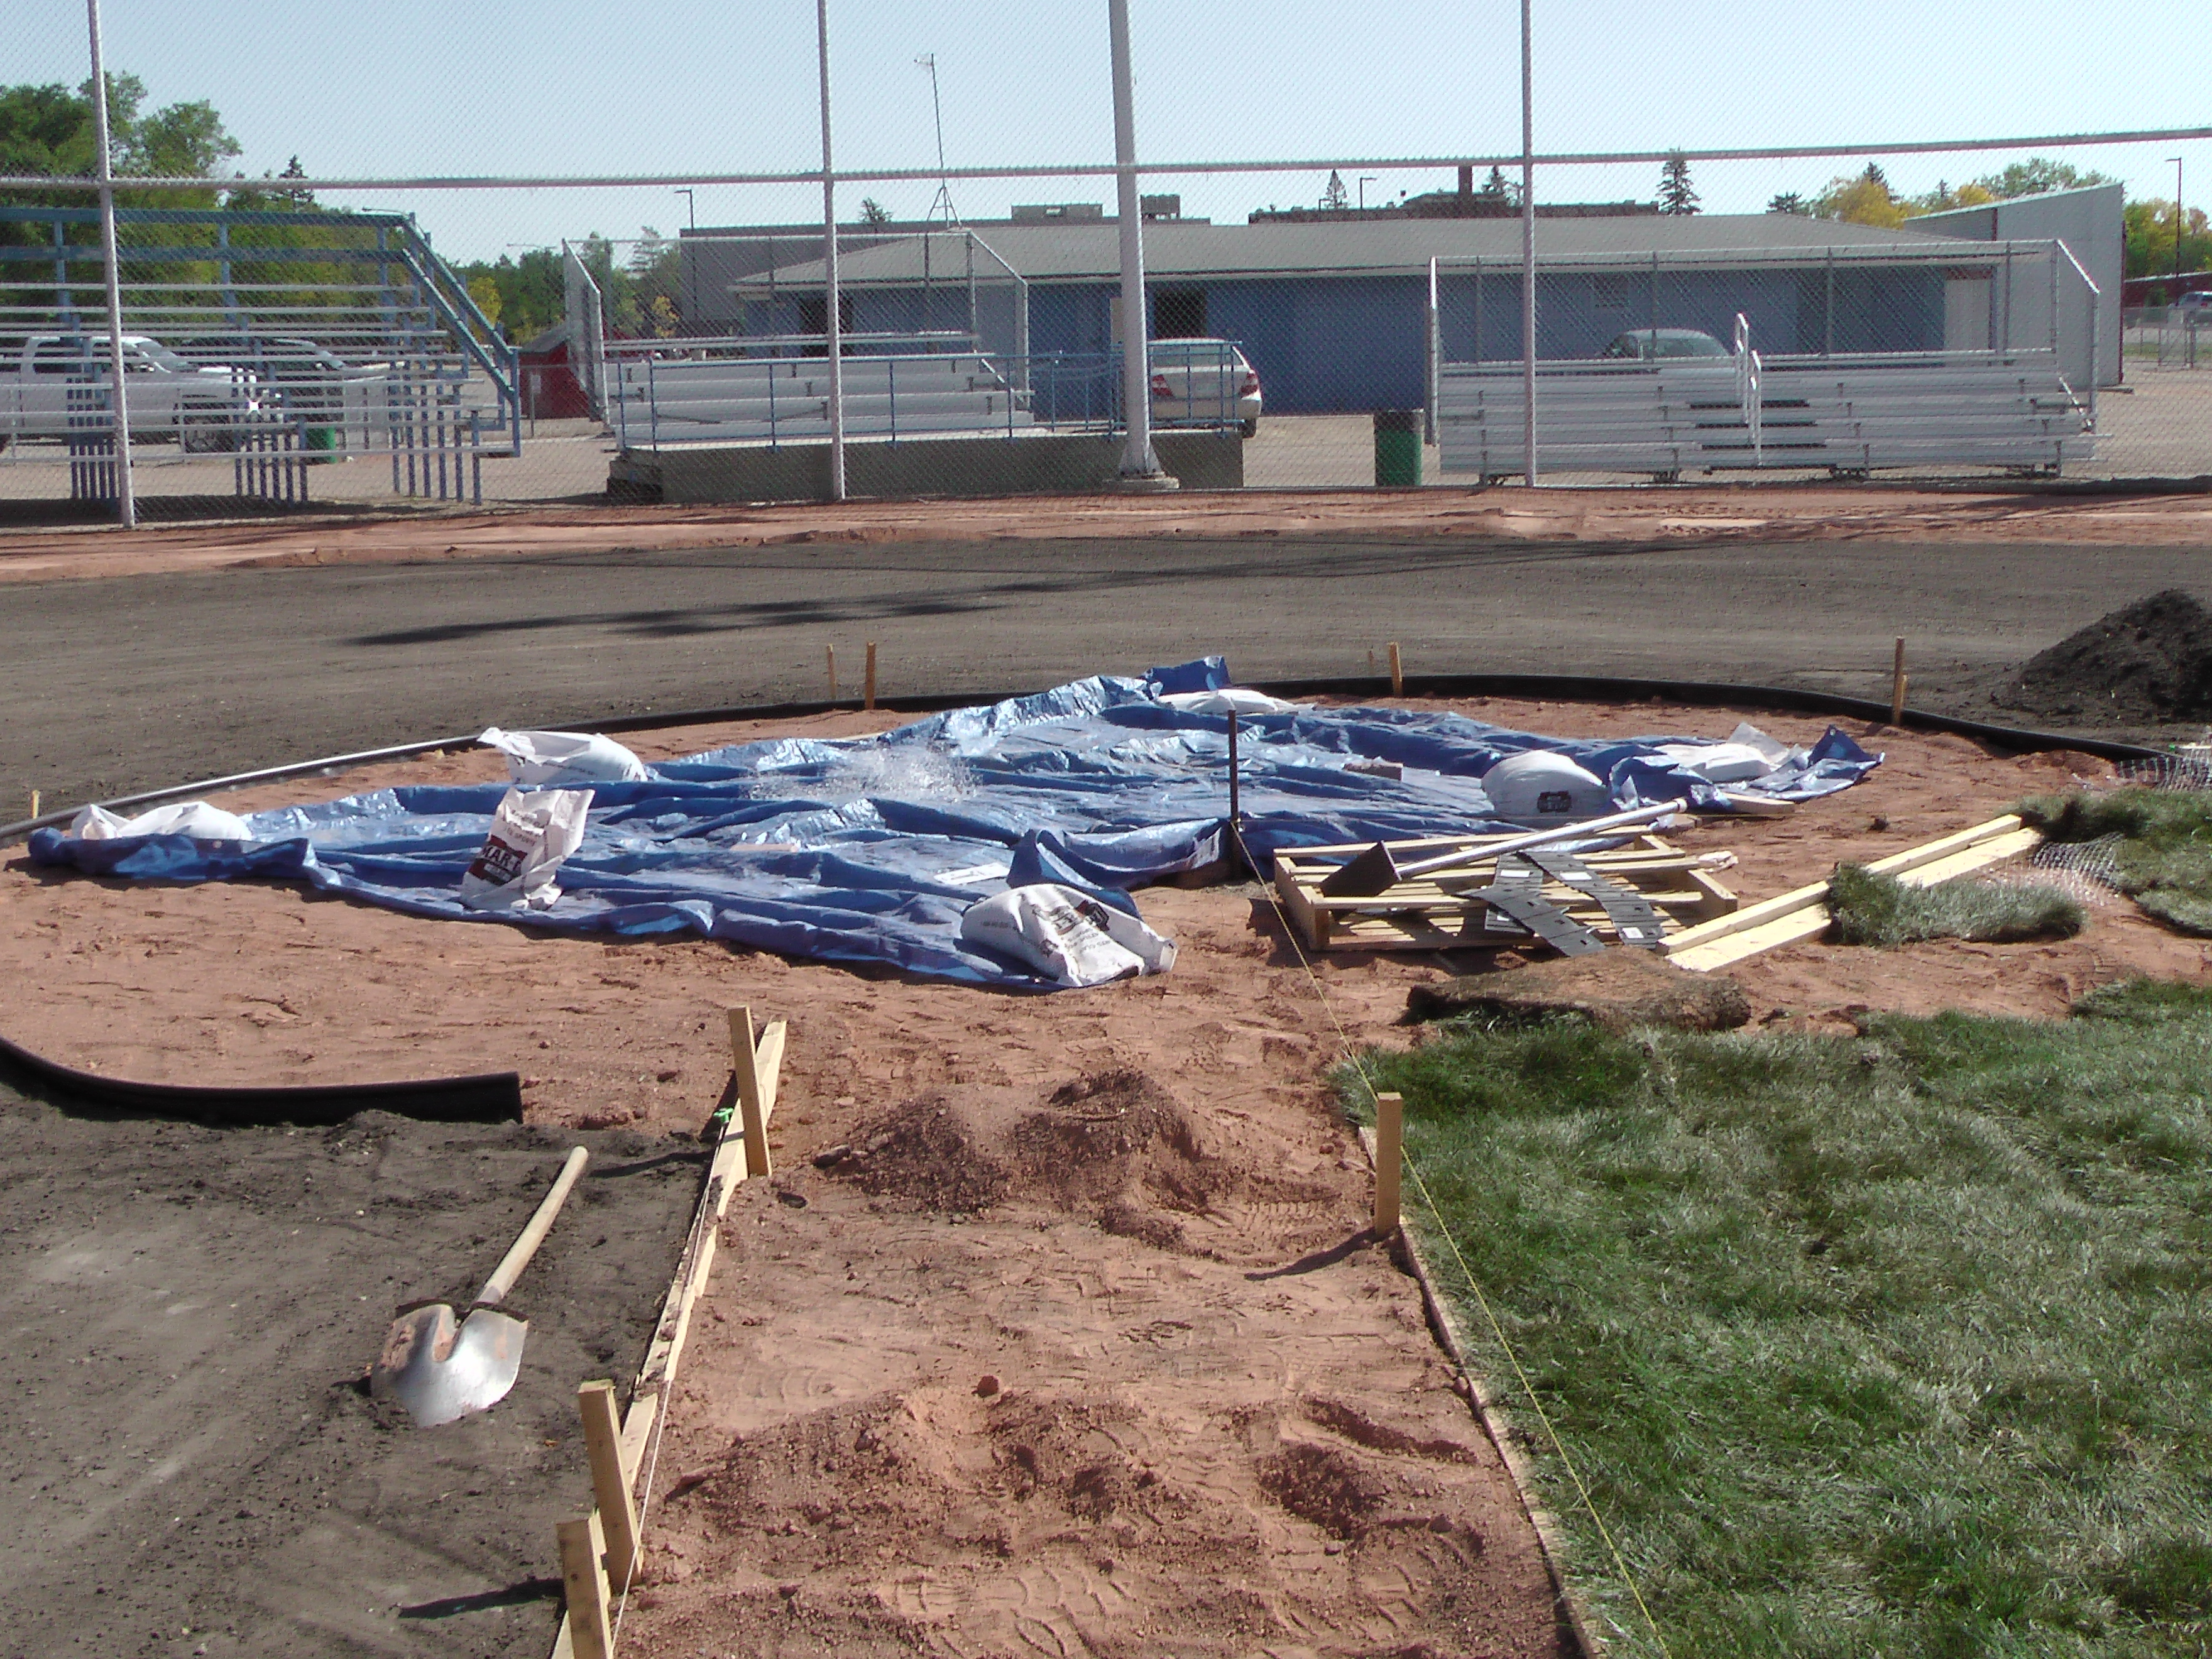 Sept 5 2018 Optimist Park Field Renovations, Placing New Sod/Leveling! - Image 6